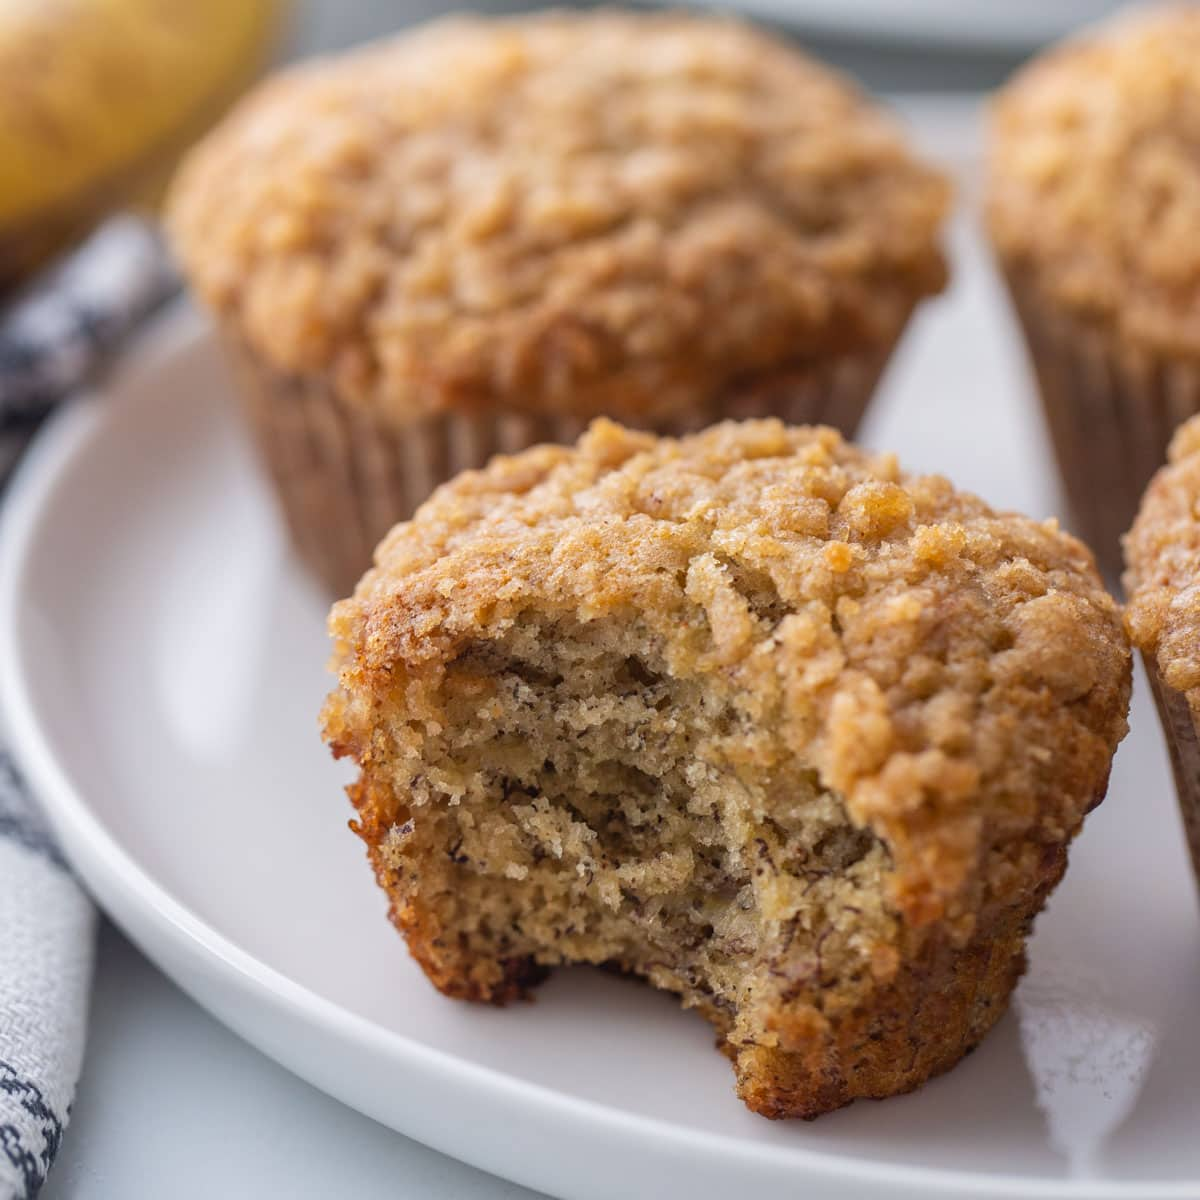 banana crumb muffin with bite missing on a white plate